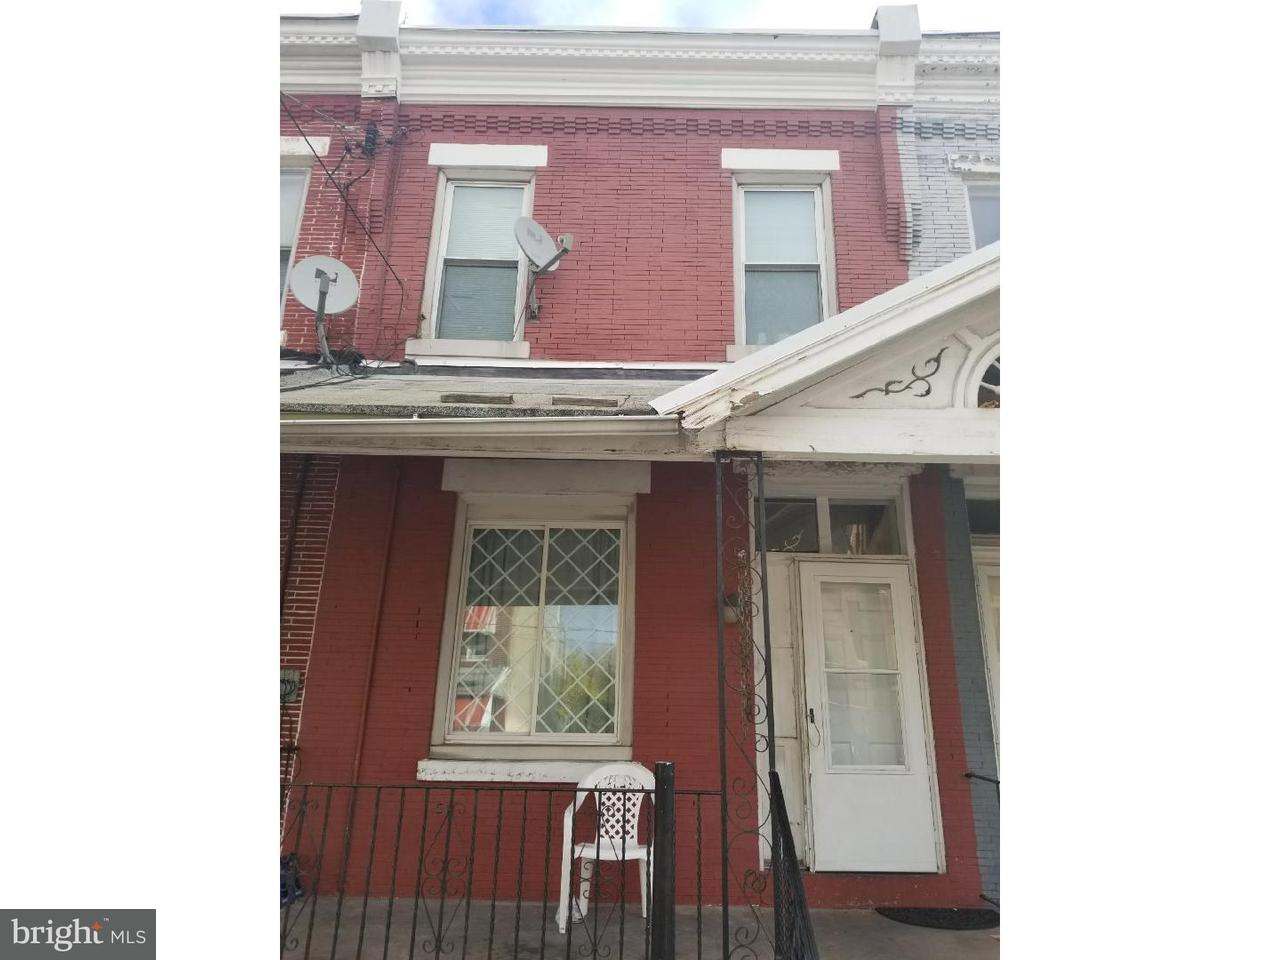 871 N 49TH Philadelphia, PA 19139